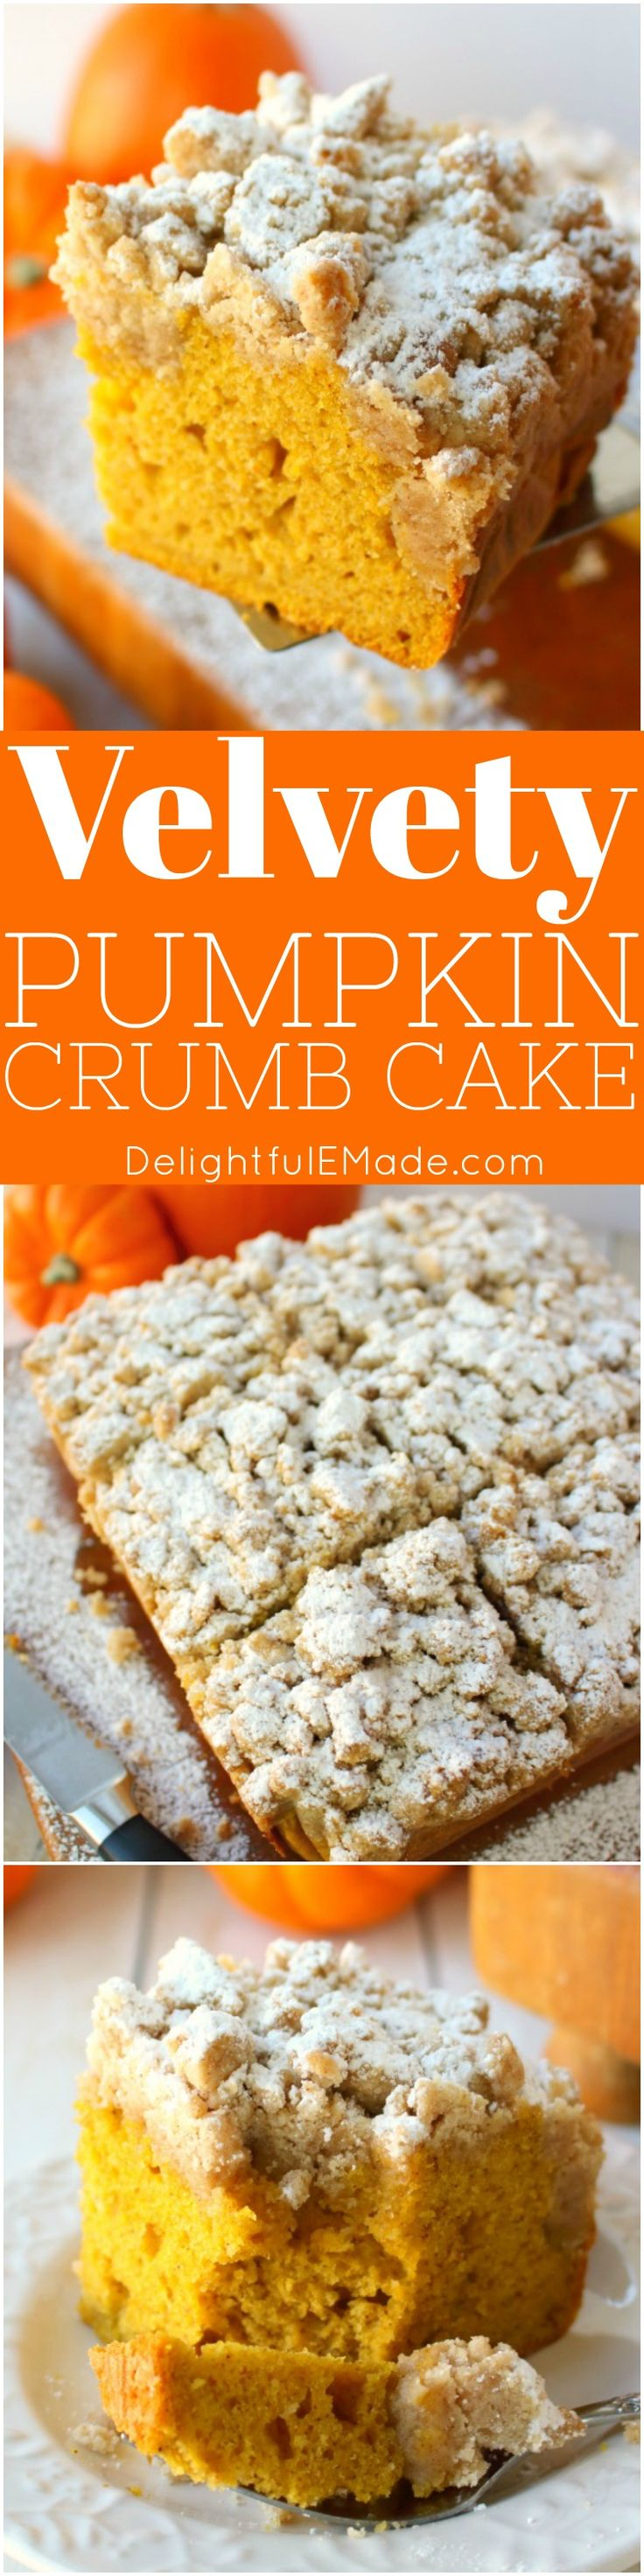 This incredibly moist, velvety pumpkin crumb cake has all your favorite fall flavors topped with an amazing cinnamon crumble. It's the perfectbreakfast treat to serve on Thanksgiving morning, or simply enjoy with your pumpkin spice latte!